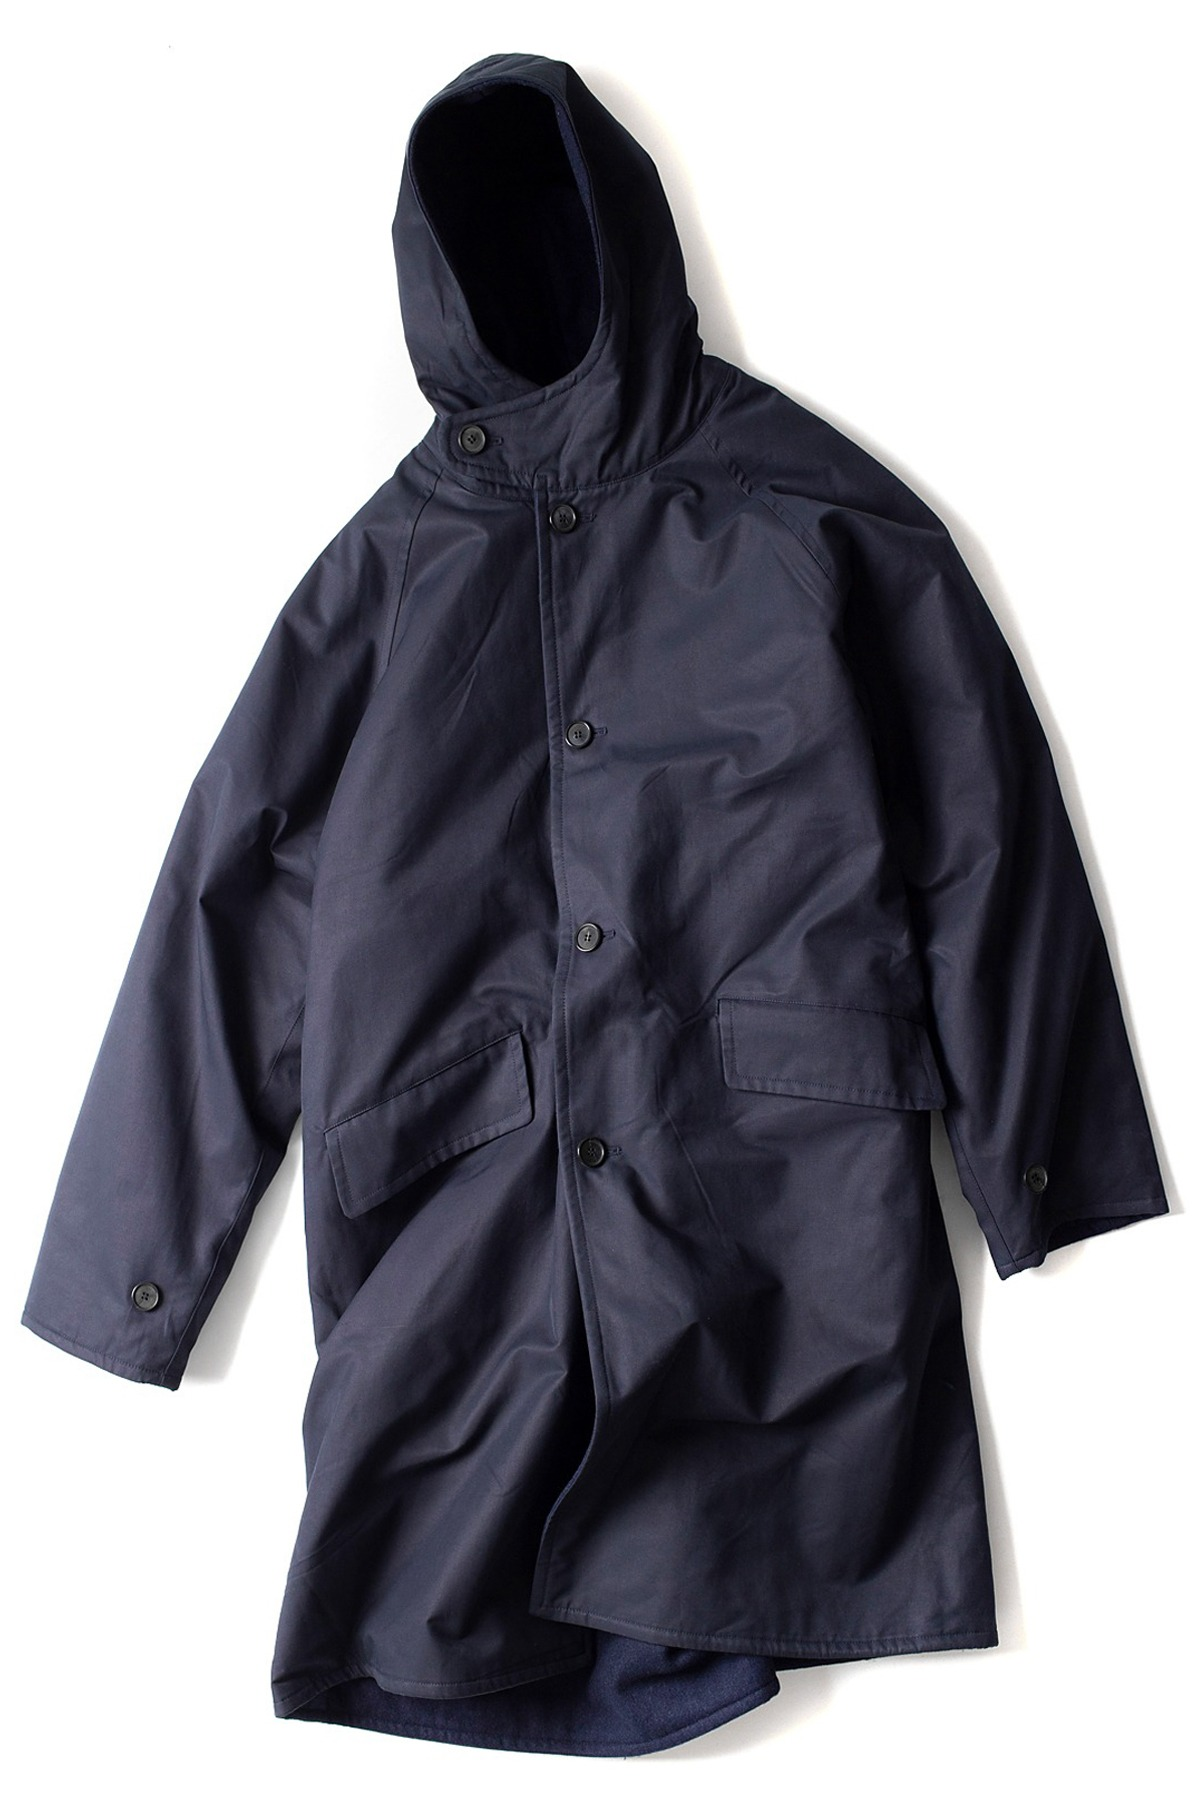 JOURNEY MAN : Journey Hood Coat (Navy)